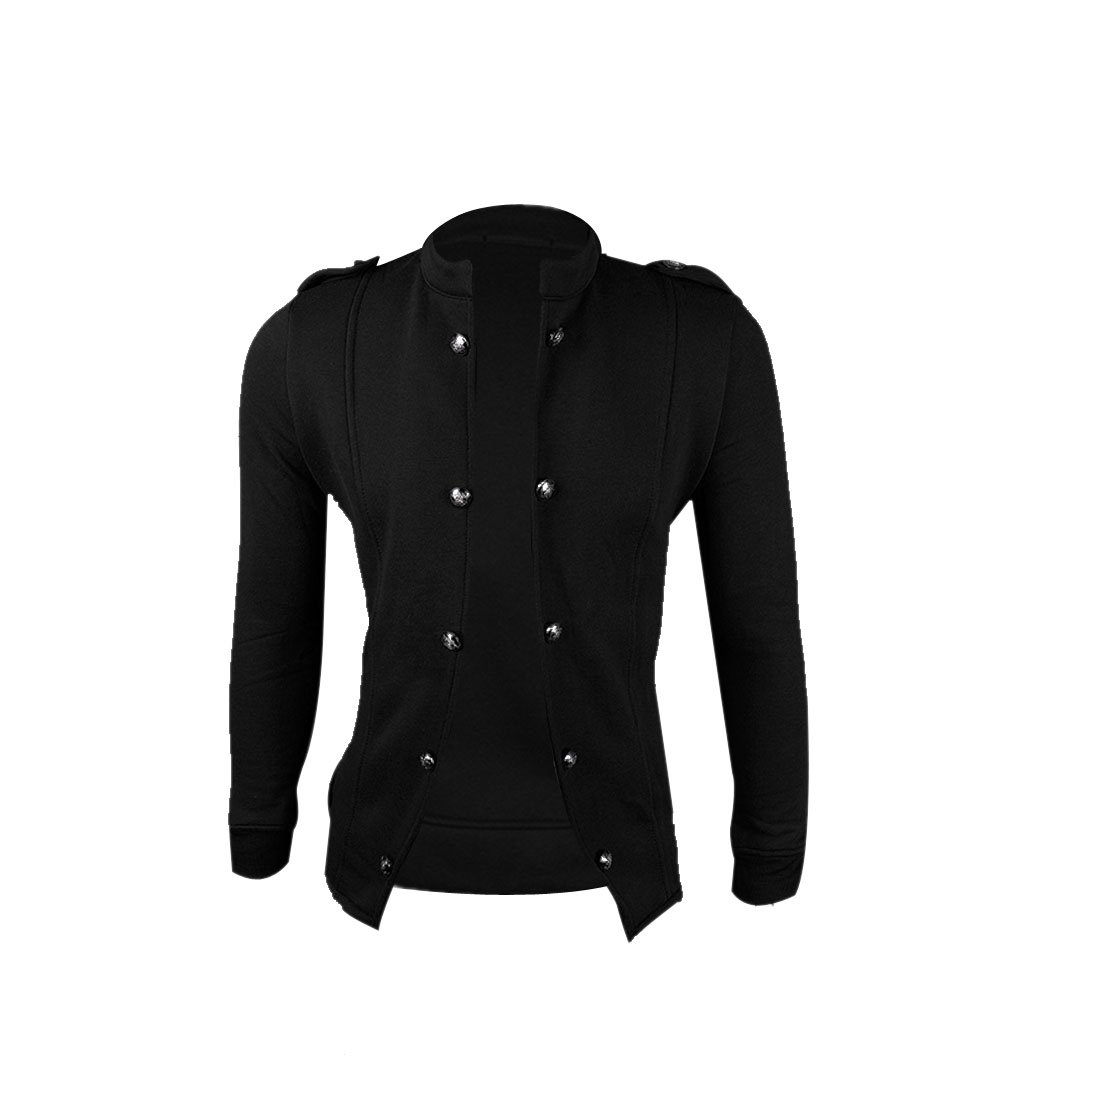 Men Black M Stand Collar Slim Fit Long Sleeve Stylish Fashion Top Jacket